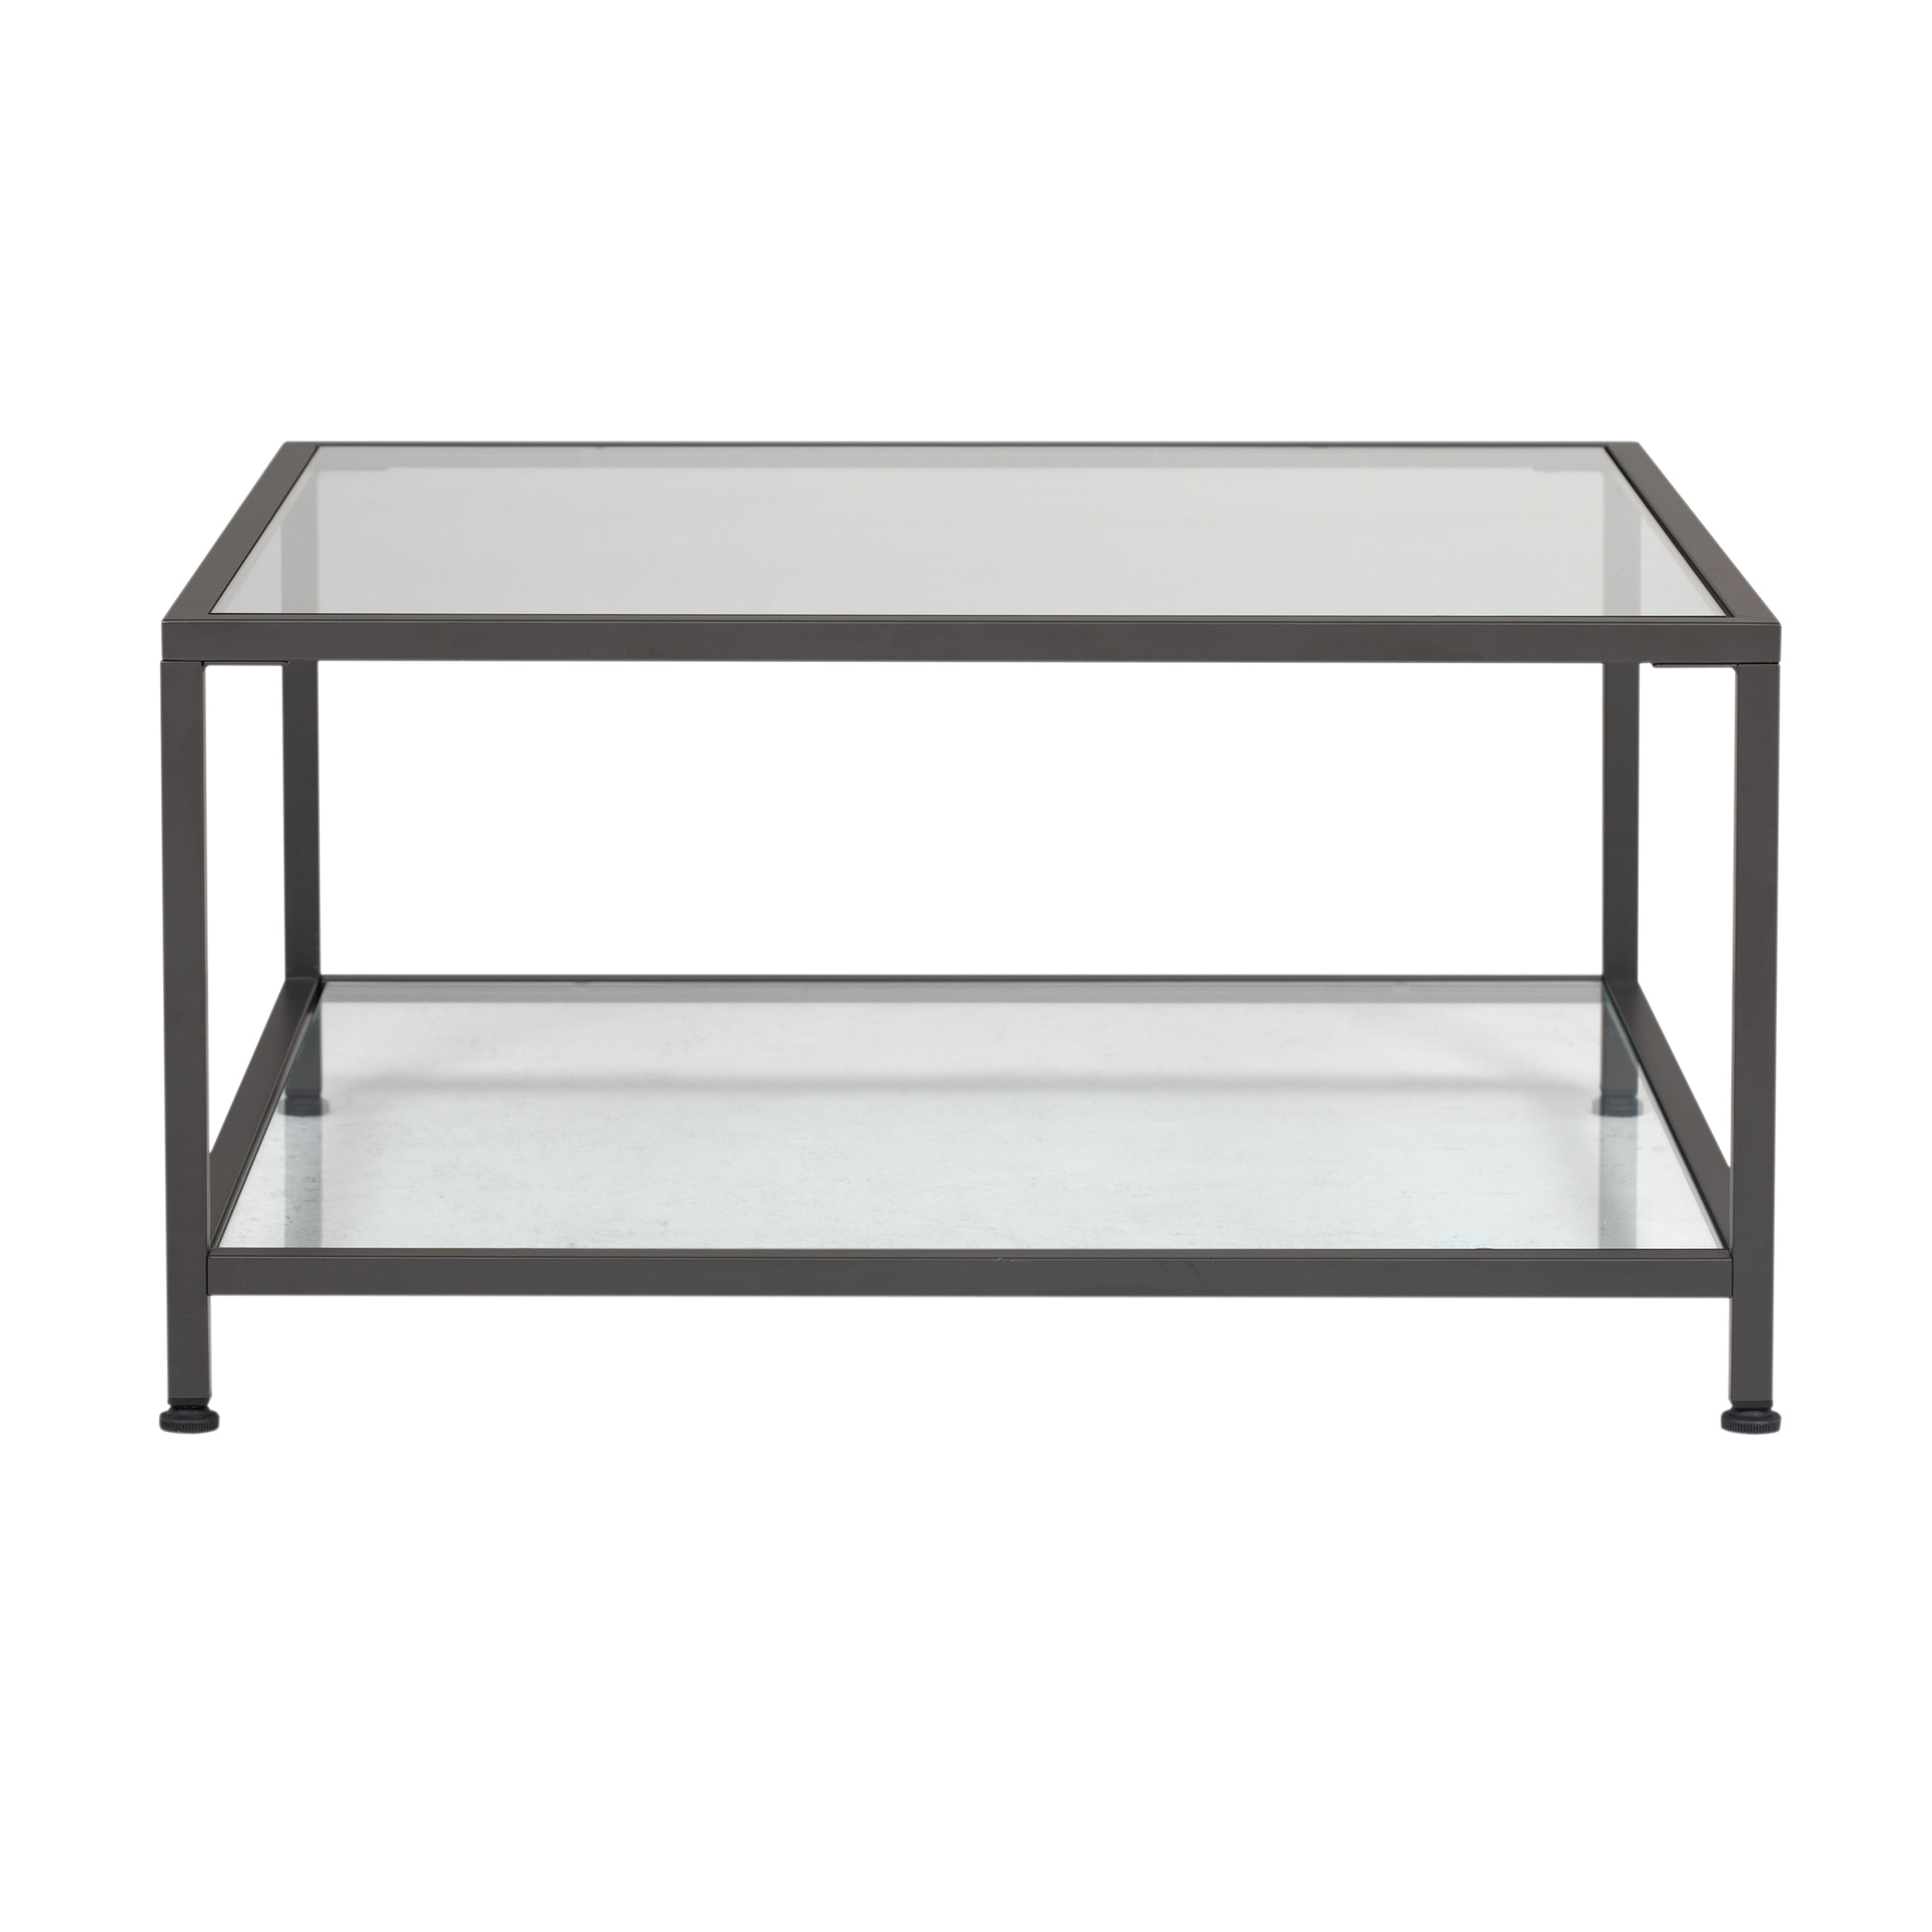 71030 Camber 30 Square Coffee Table front